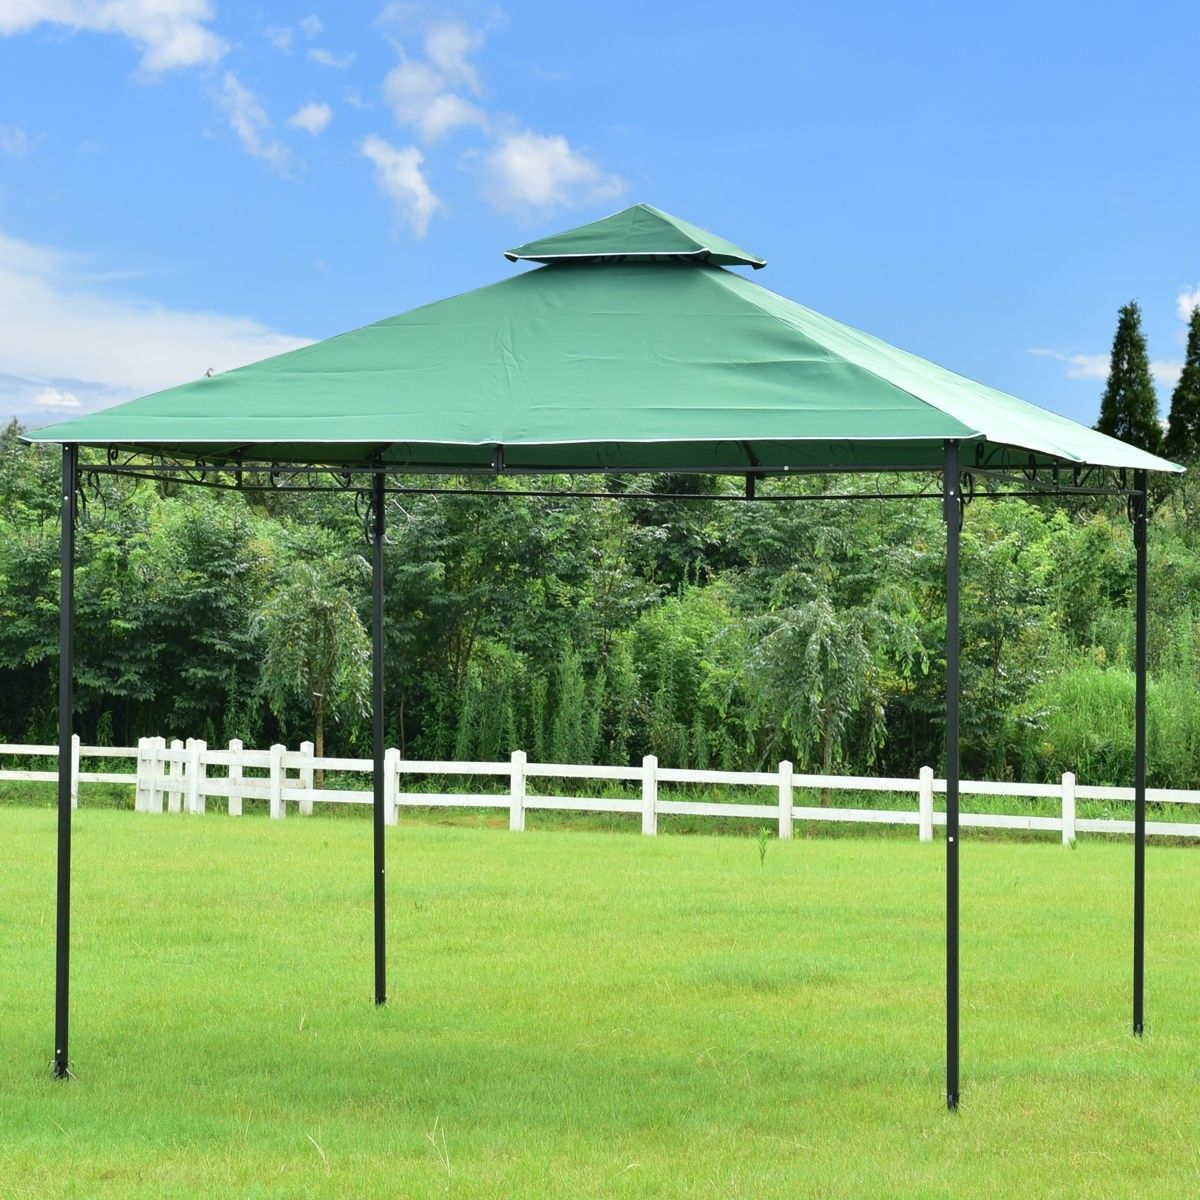 2 Tier 10 X 10 Patio Wedding Party Gazebo 81 95 Free Shipping Material Steel Polyester Fabric Color As The Pi Gazebo Canopy Patio Wedding Garden Awning